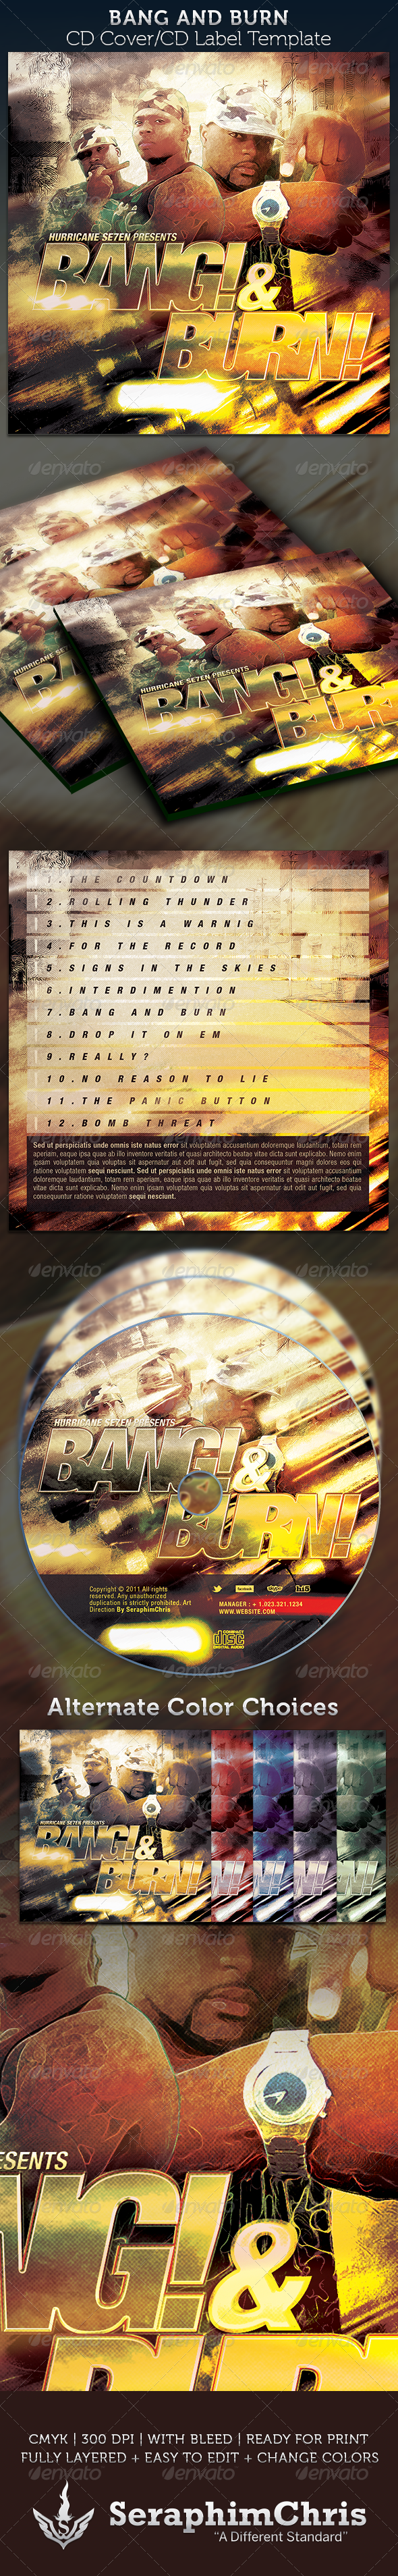 GraphicRiver Bang & Burn CD Cover Artwork Template 3987855